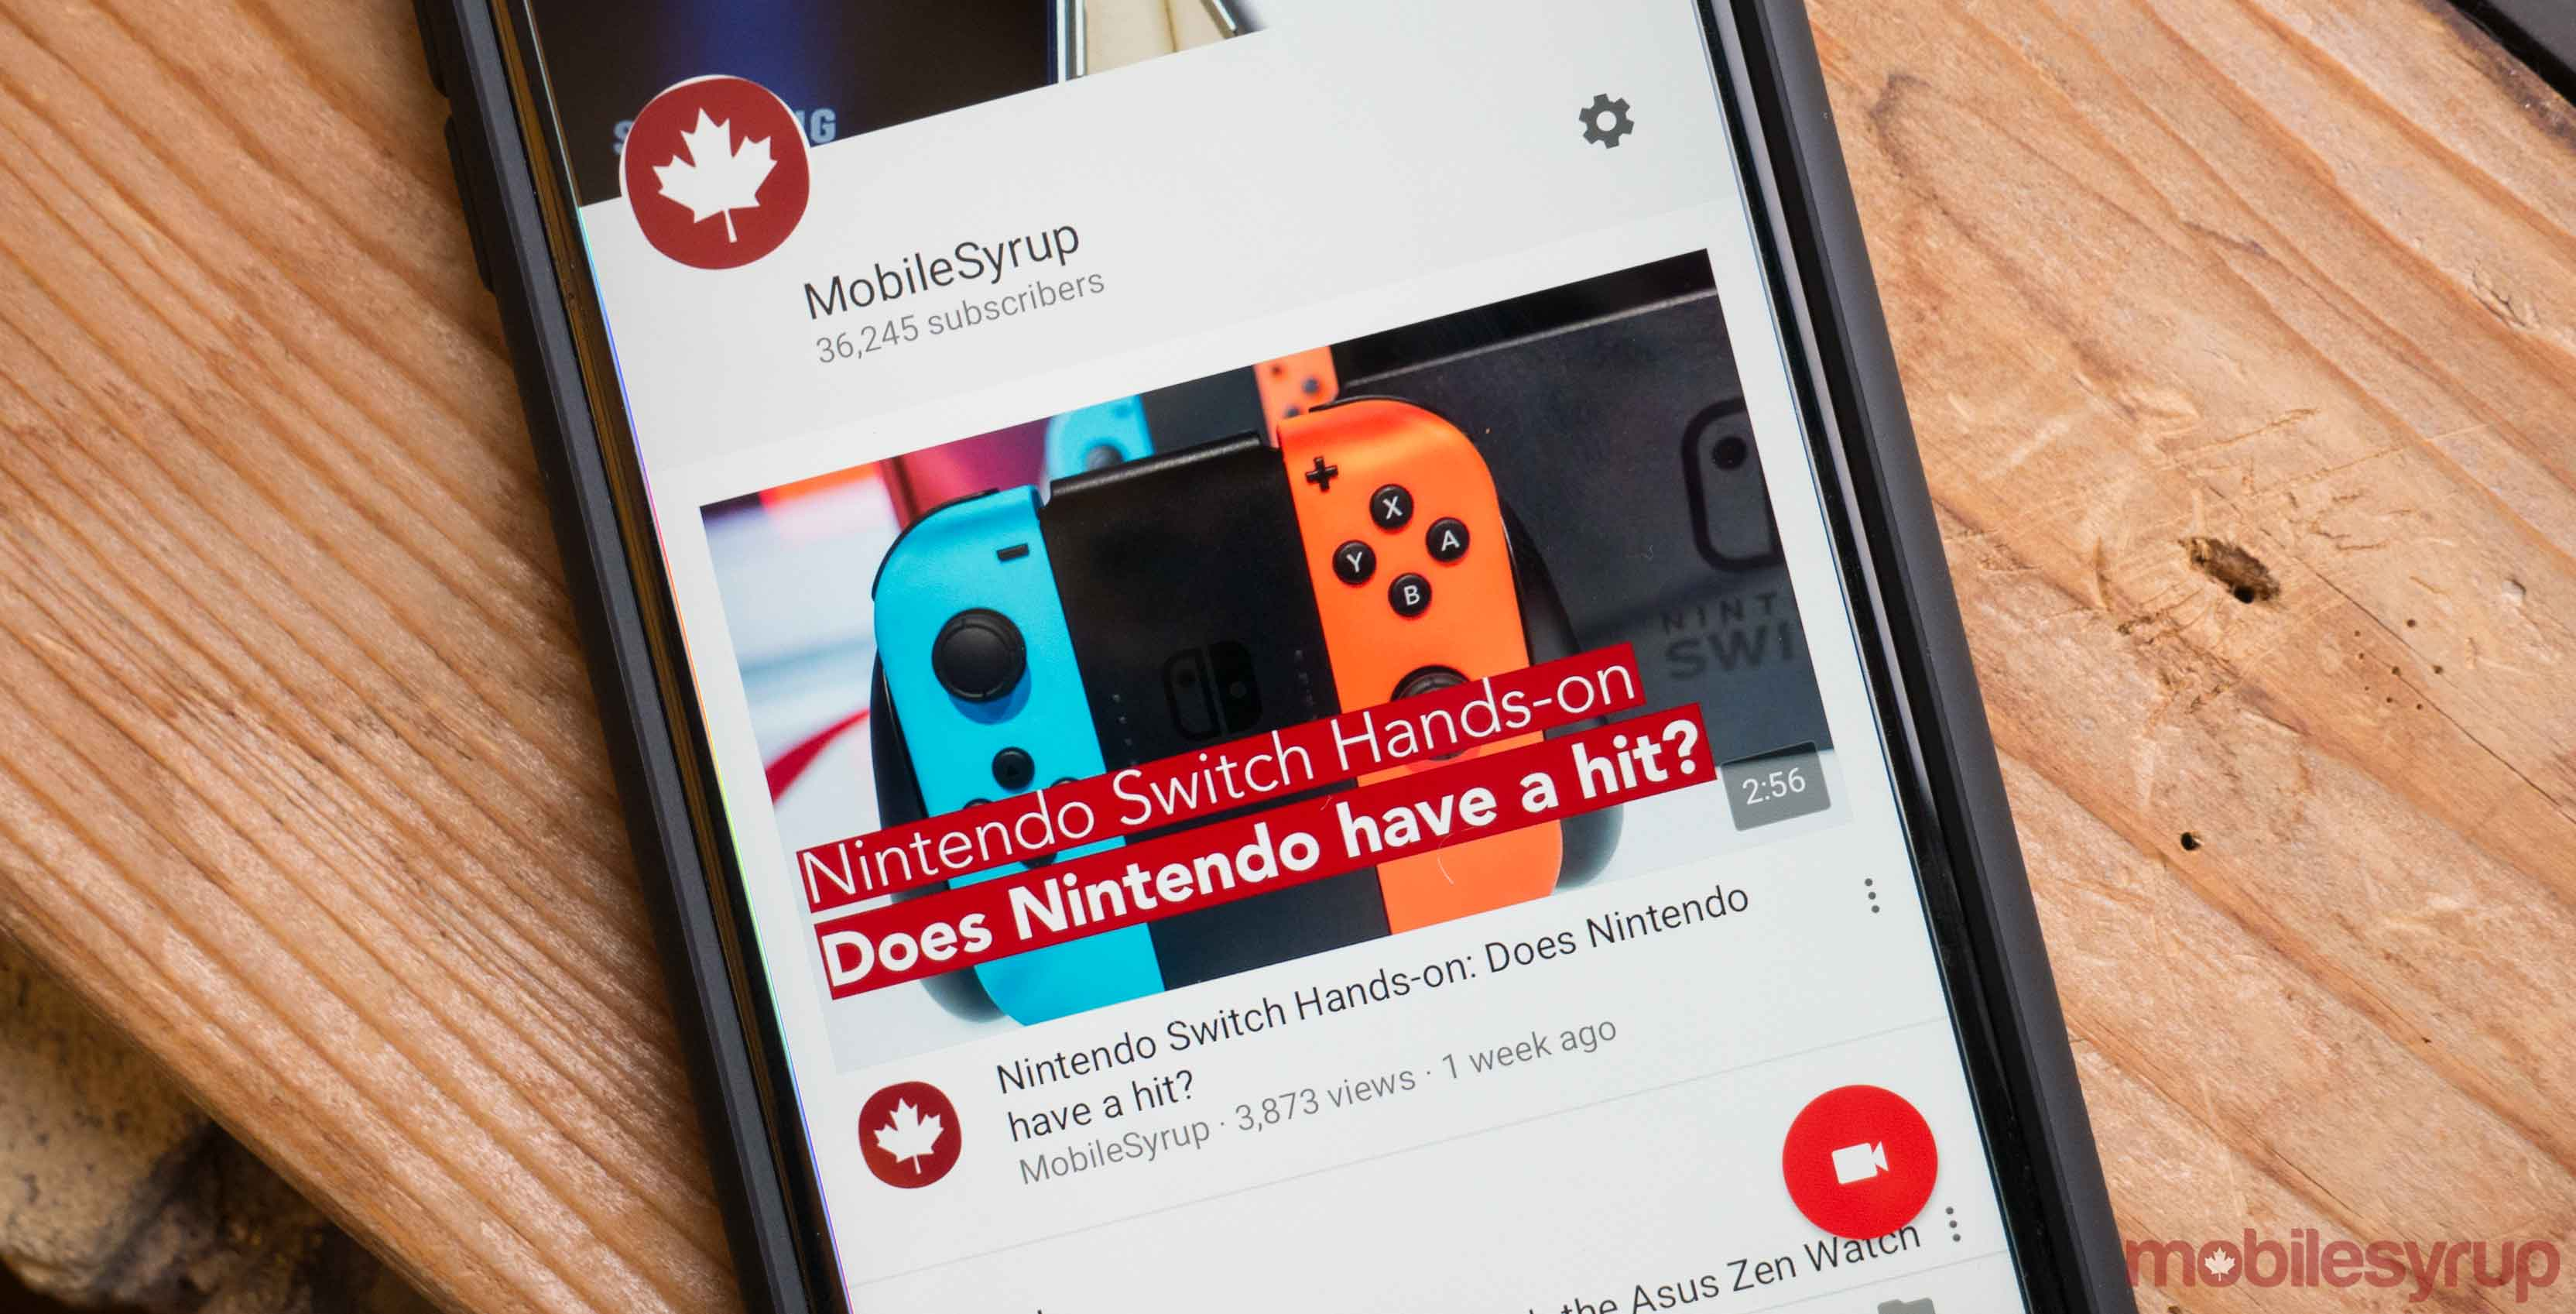 YouTube App displaying MobileSyrup - YouTube live streaming